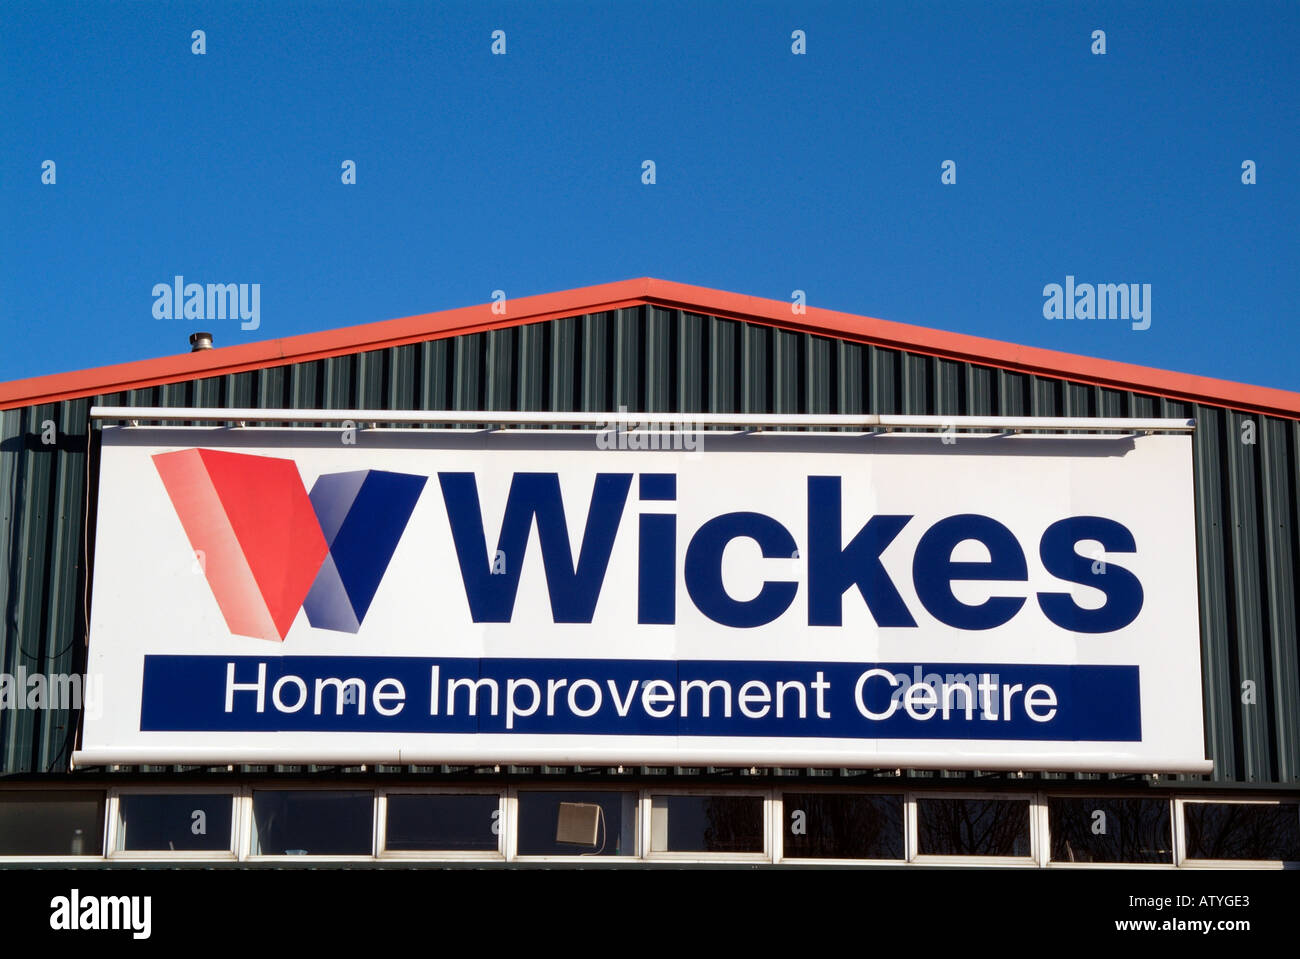 Wickes home stock photos wickes home stock images alamy wickes home improvement centre store logo red blue white exterior display sign diy do it yourself solutioingenieria Image collections